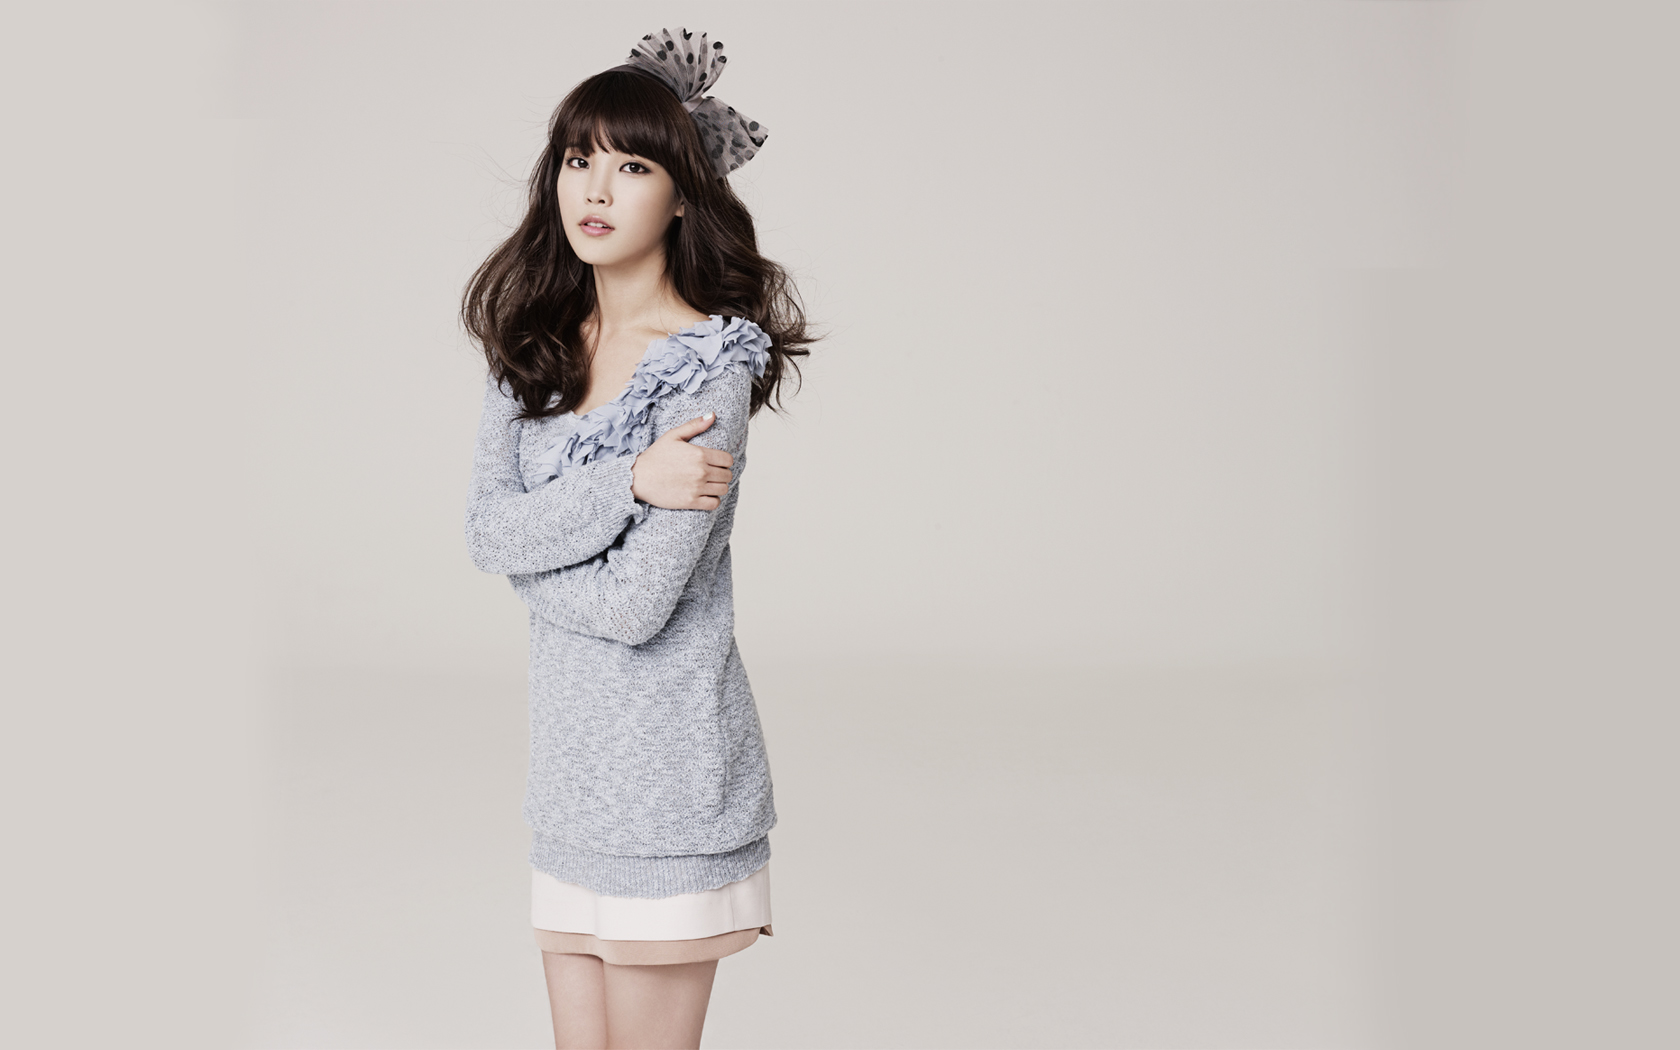 Cute Korean Girl Hd Wallpaper Download Iu Images Iu Y Sb Hd Wallpaper And Background Photos